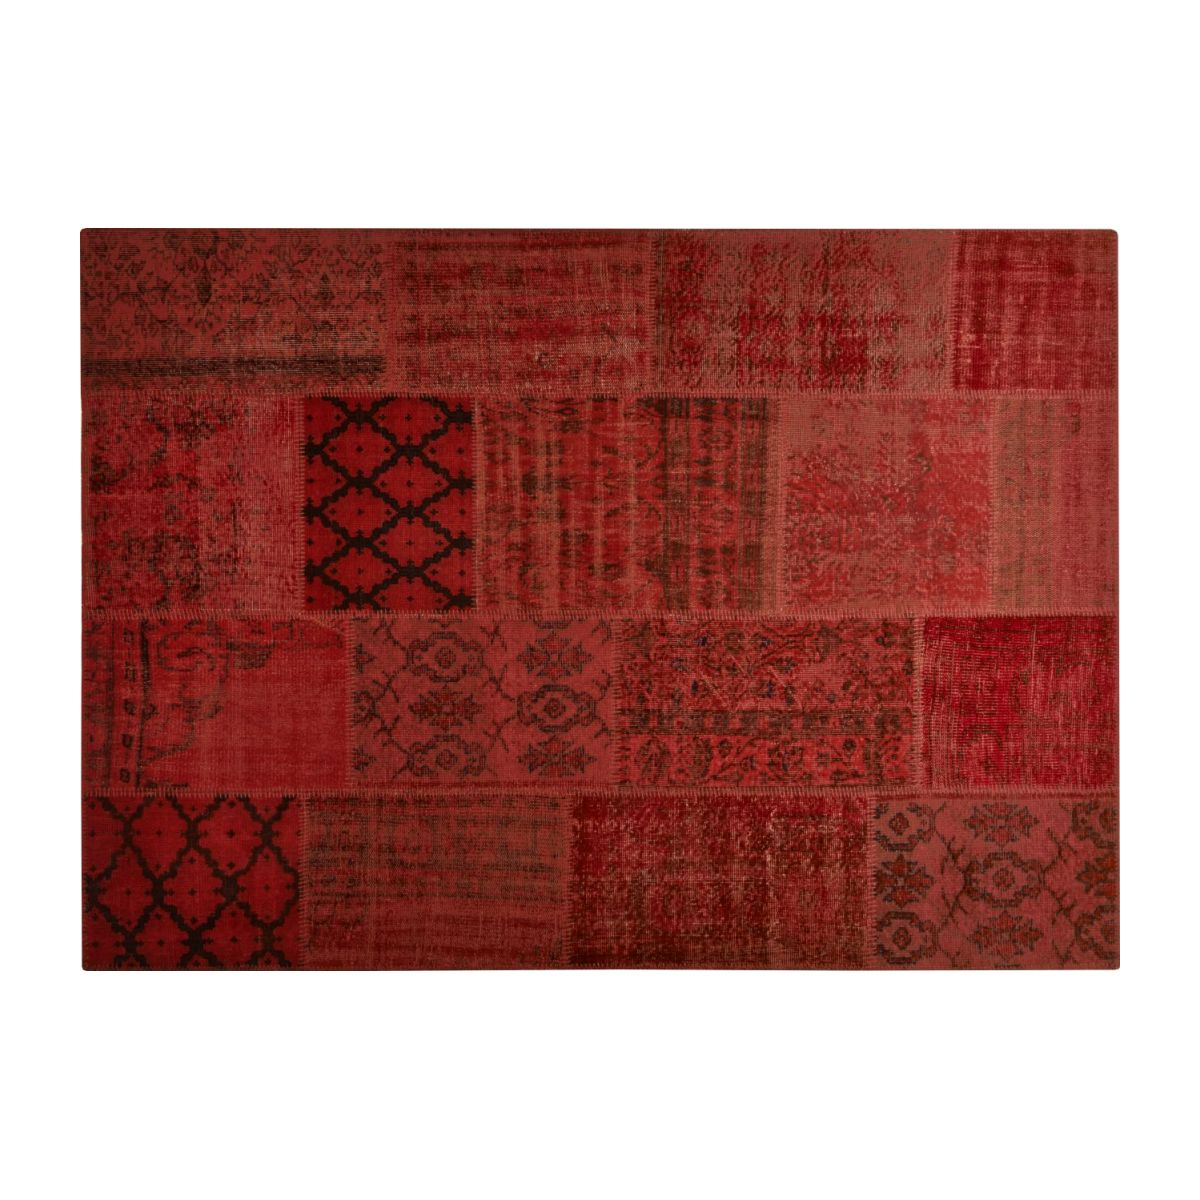 Tapis patchwork rouge n°3